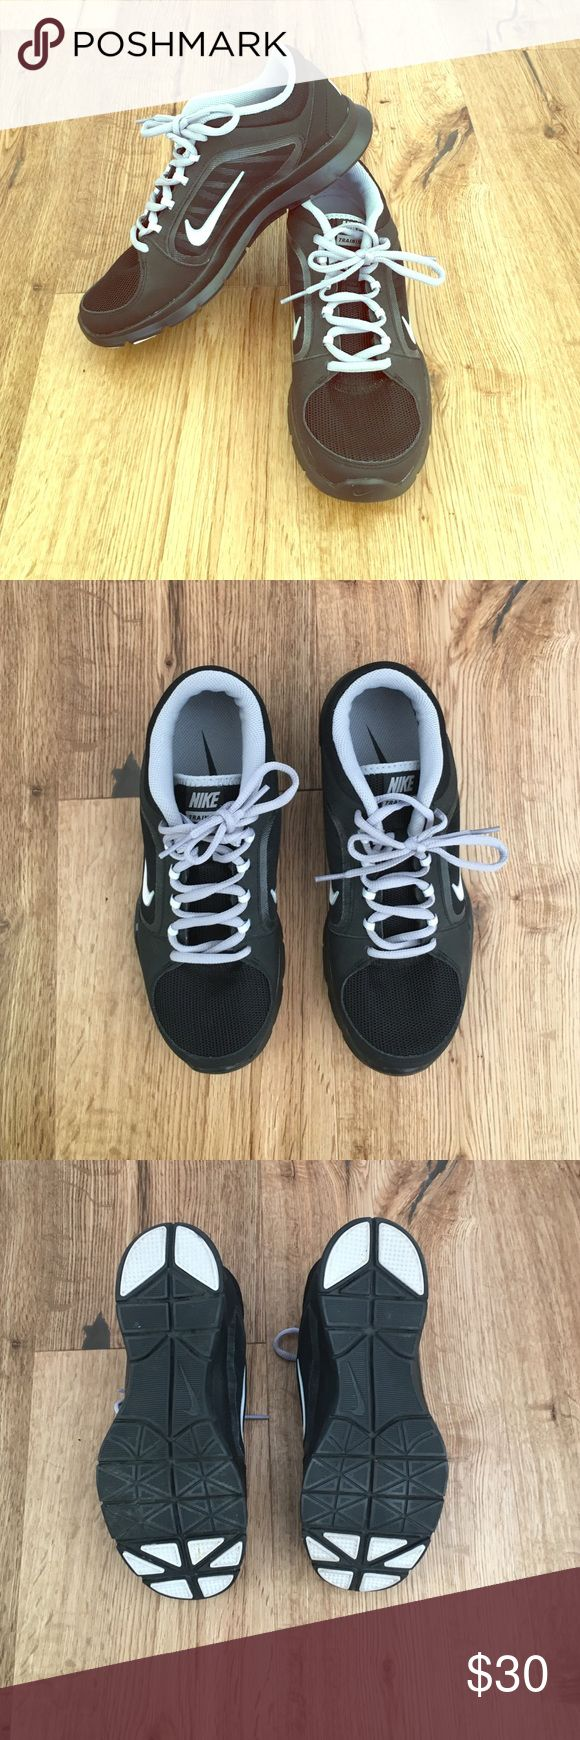 Nike Trainers Black and White Womens Sz 8 Barely worn, practically new Nike Trainers. Nice and sturdy. Very clean, no scuffs or stains. Size 8. Black with white check and gray inside. Nike Shoes Athletic Shoes